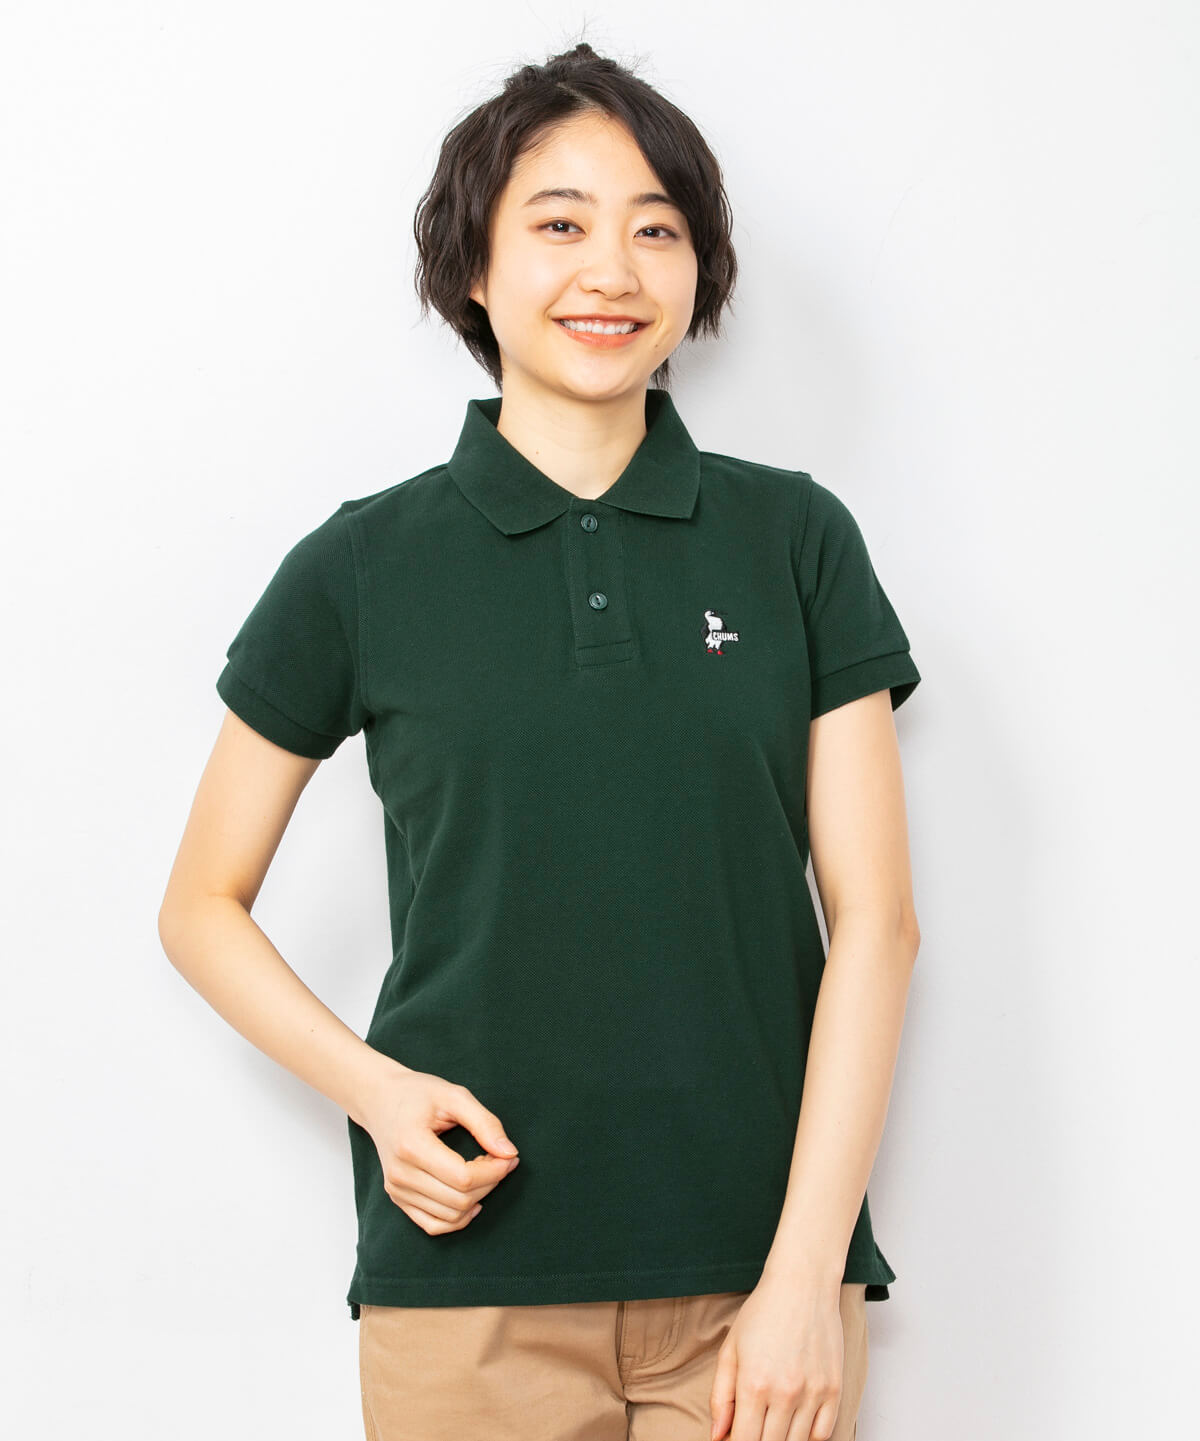 Booby Polo Shirt(ブービーポロシャツ(ポロシャツ))